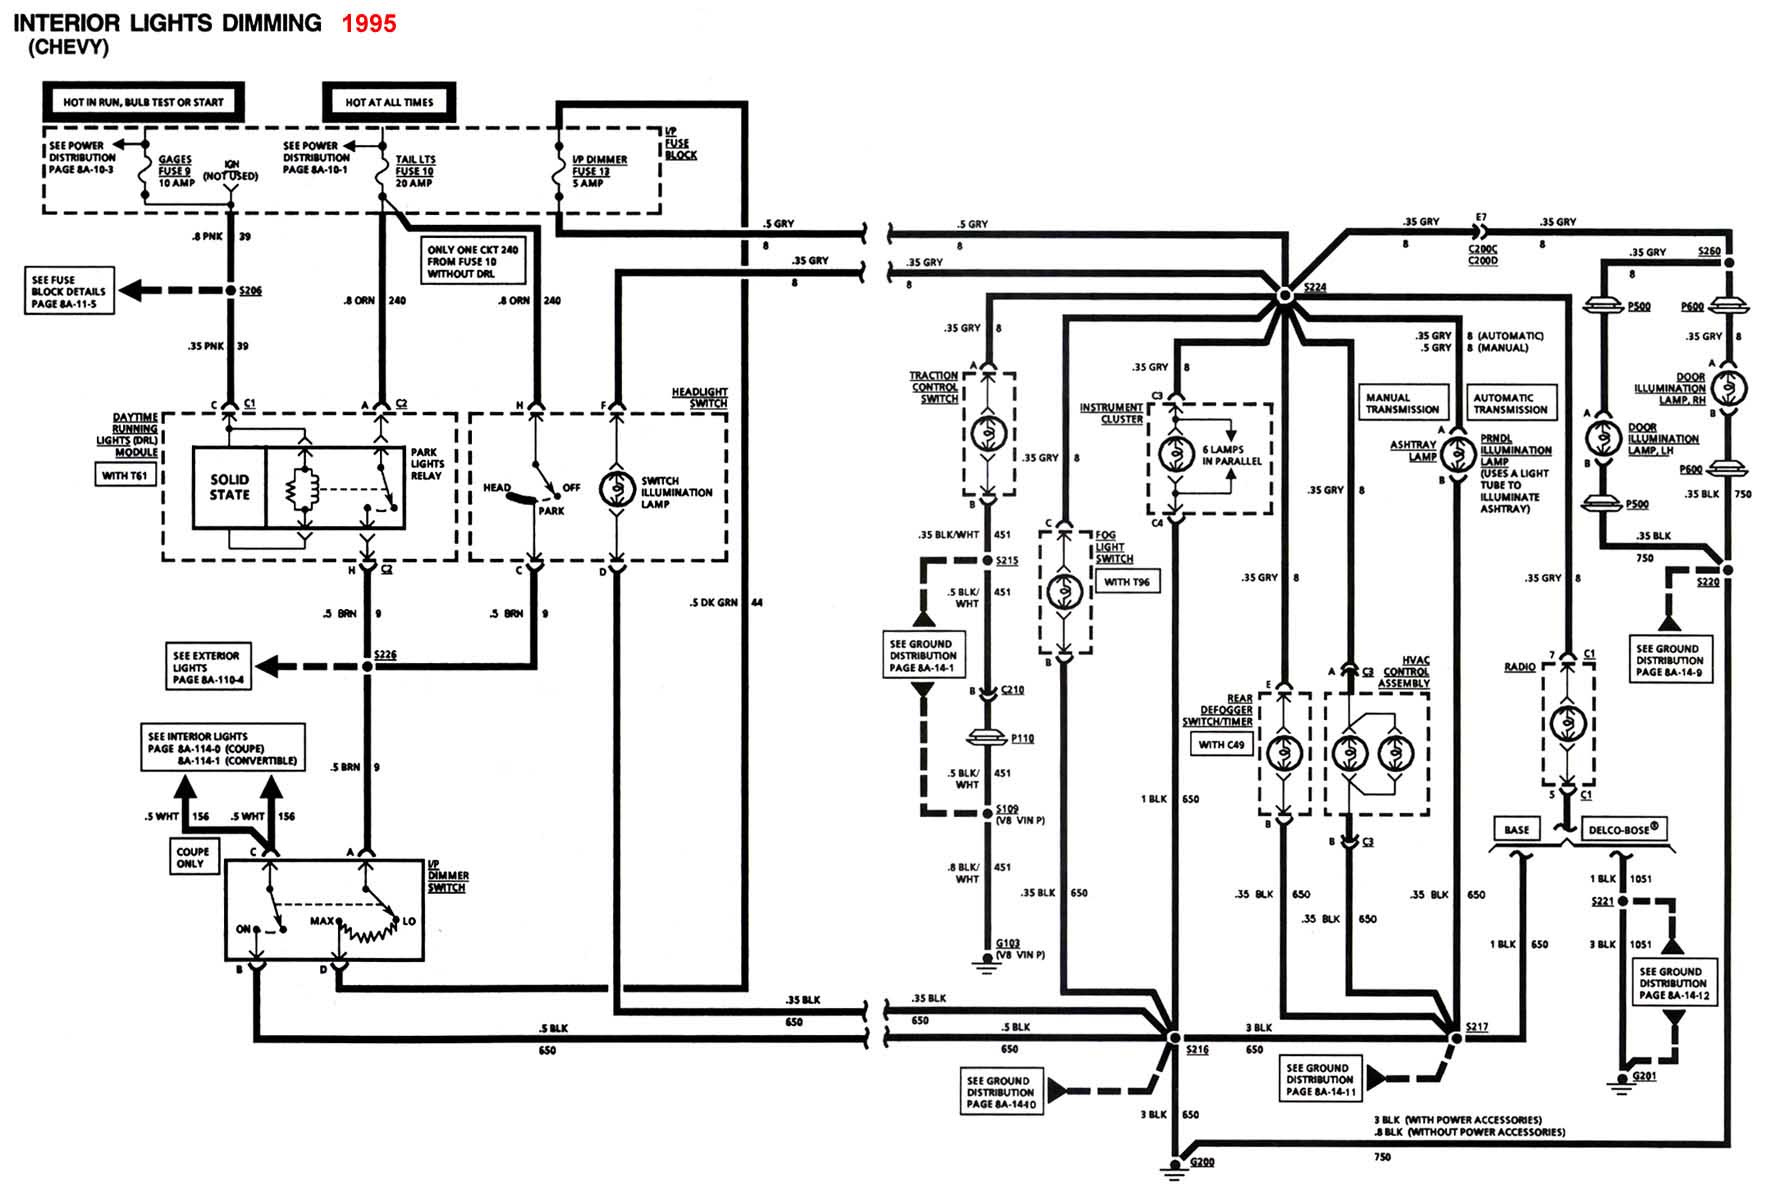 hight resolution of wiring diagram for engine for 1997 camaro z28 wiring diagram 1997 camaro headlight wiring diagram 1997 camaro wiring diagram